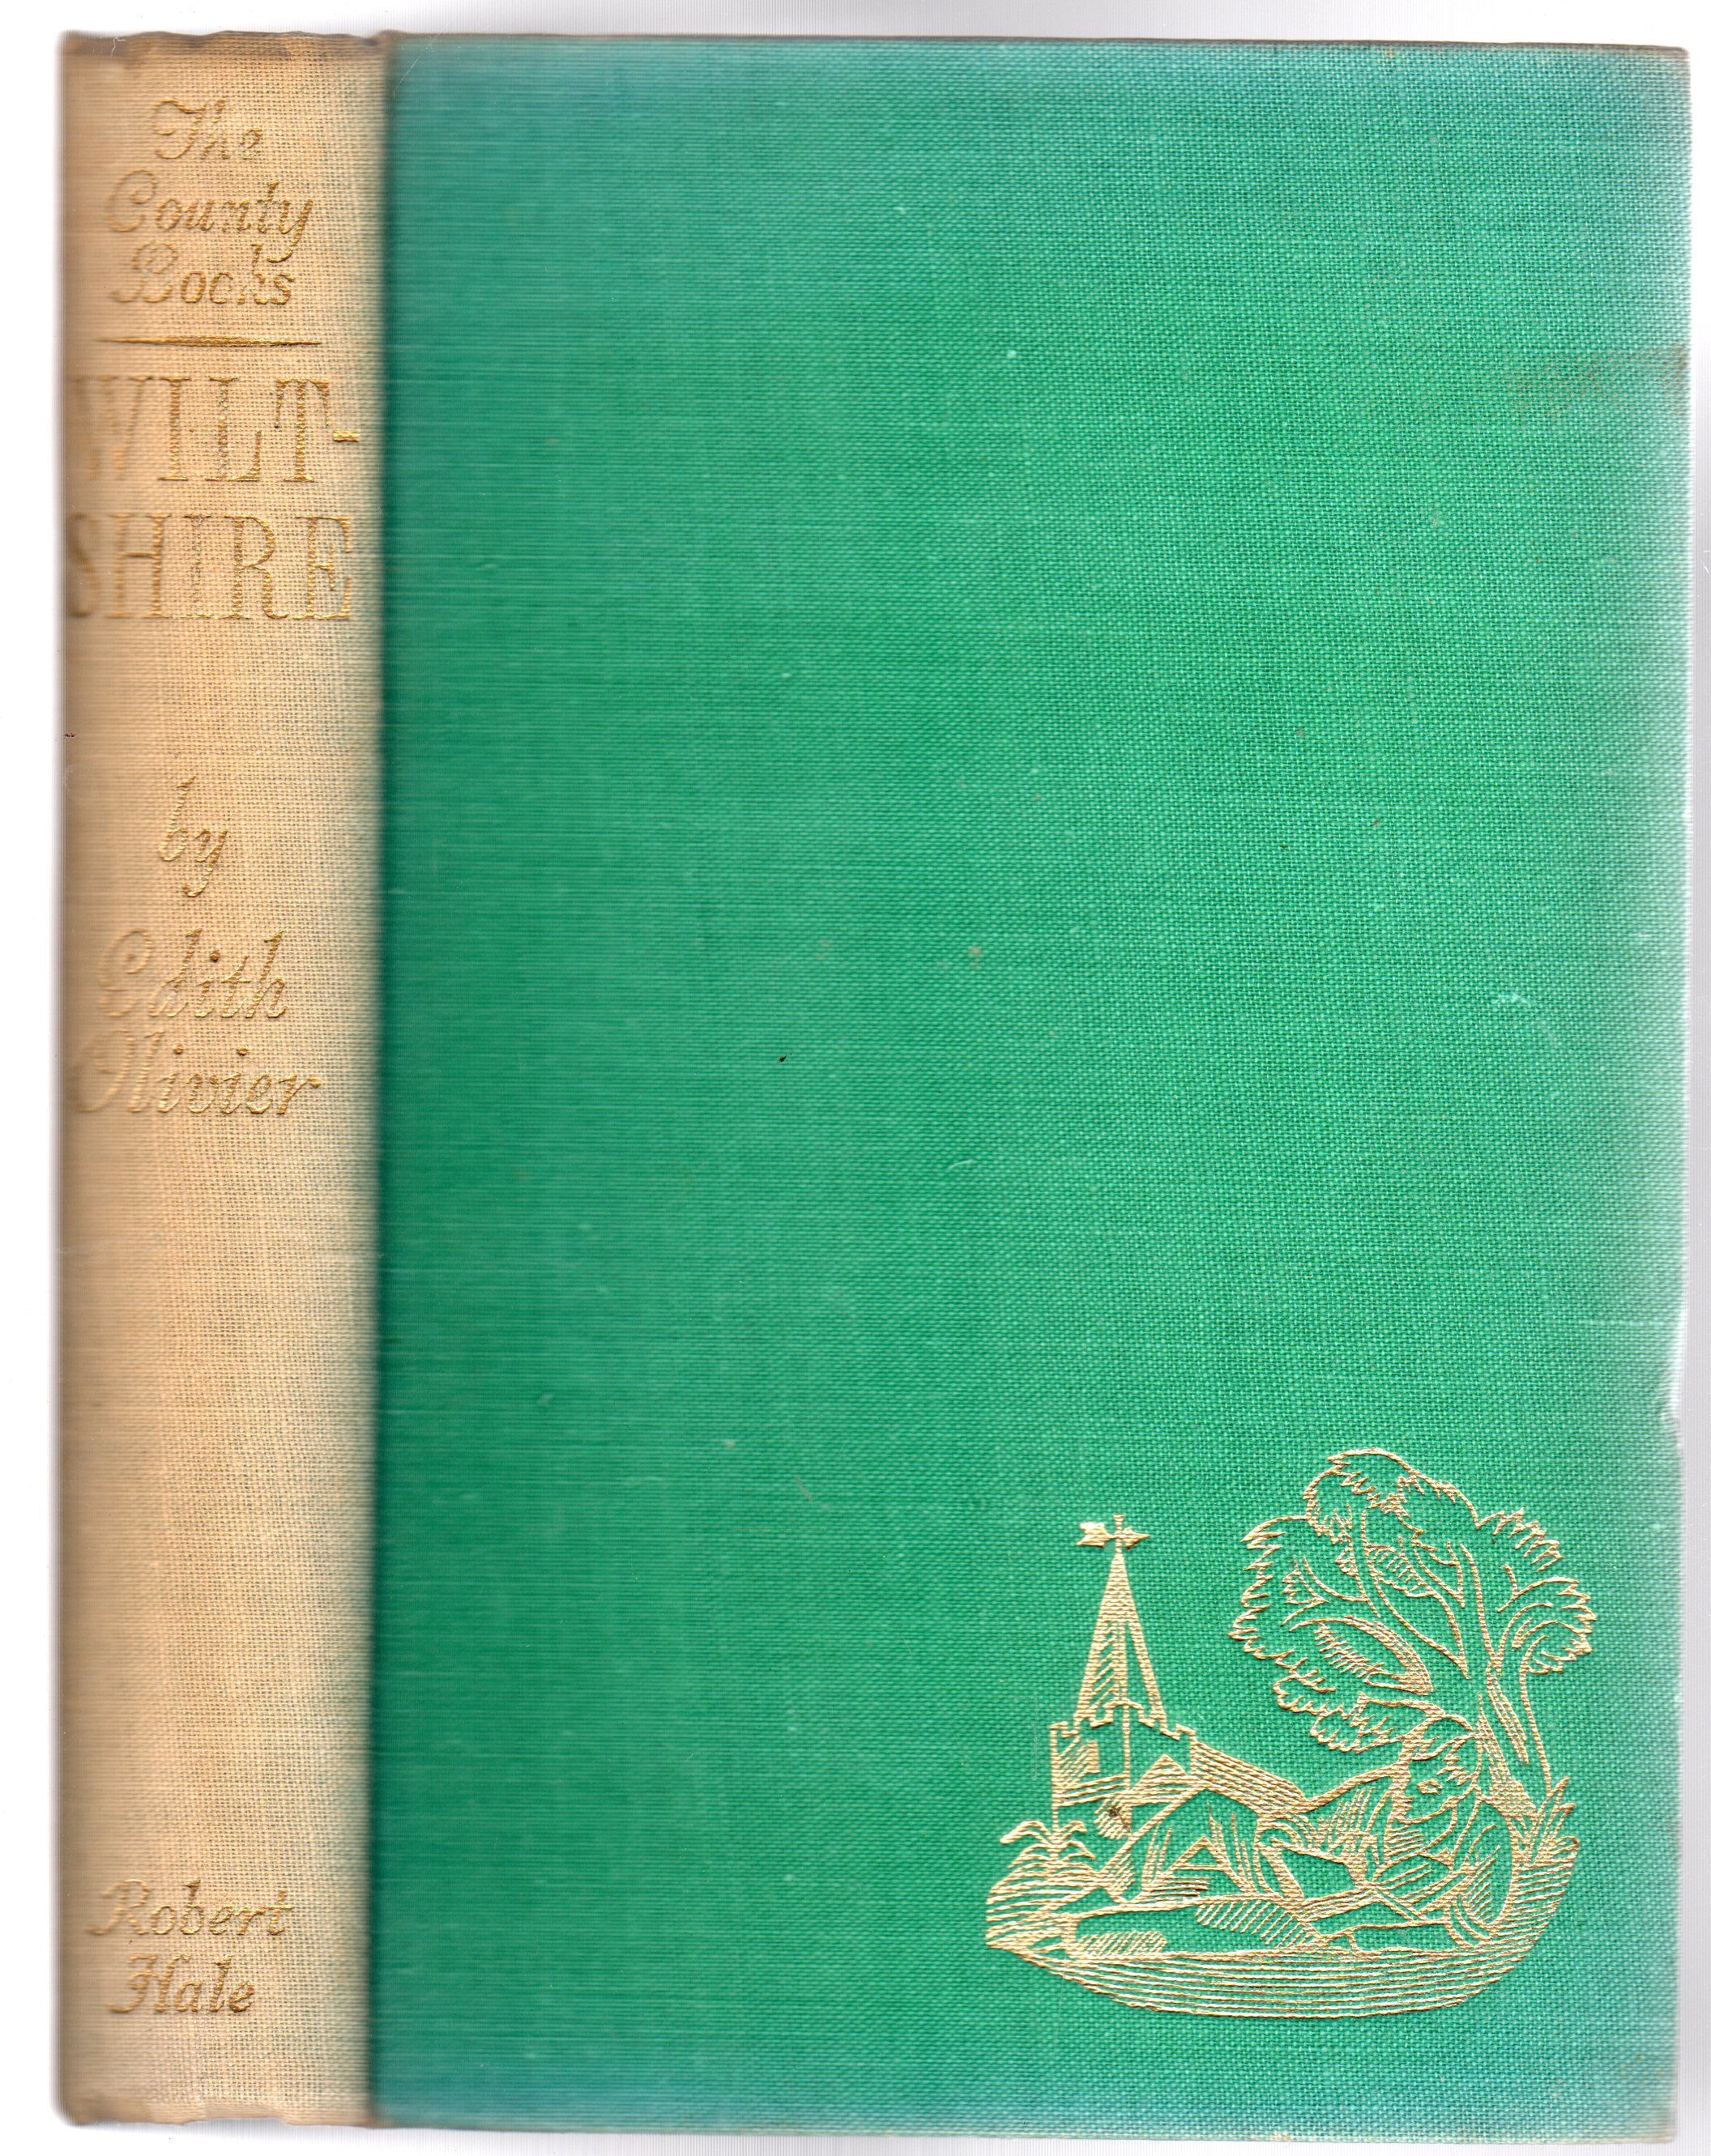 Image for Wiltshire - The County Books